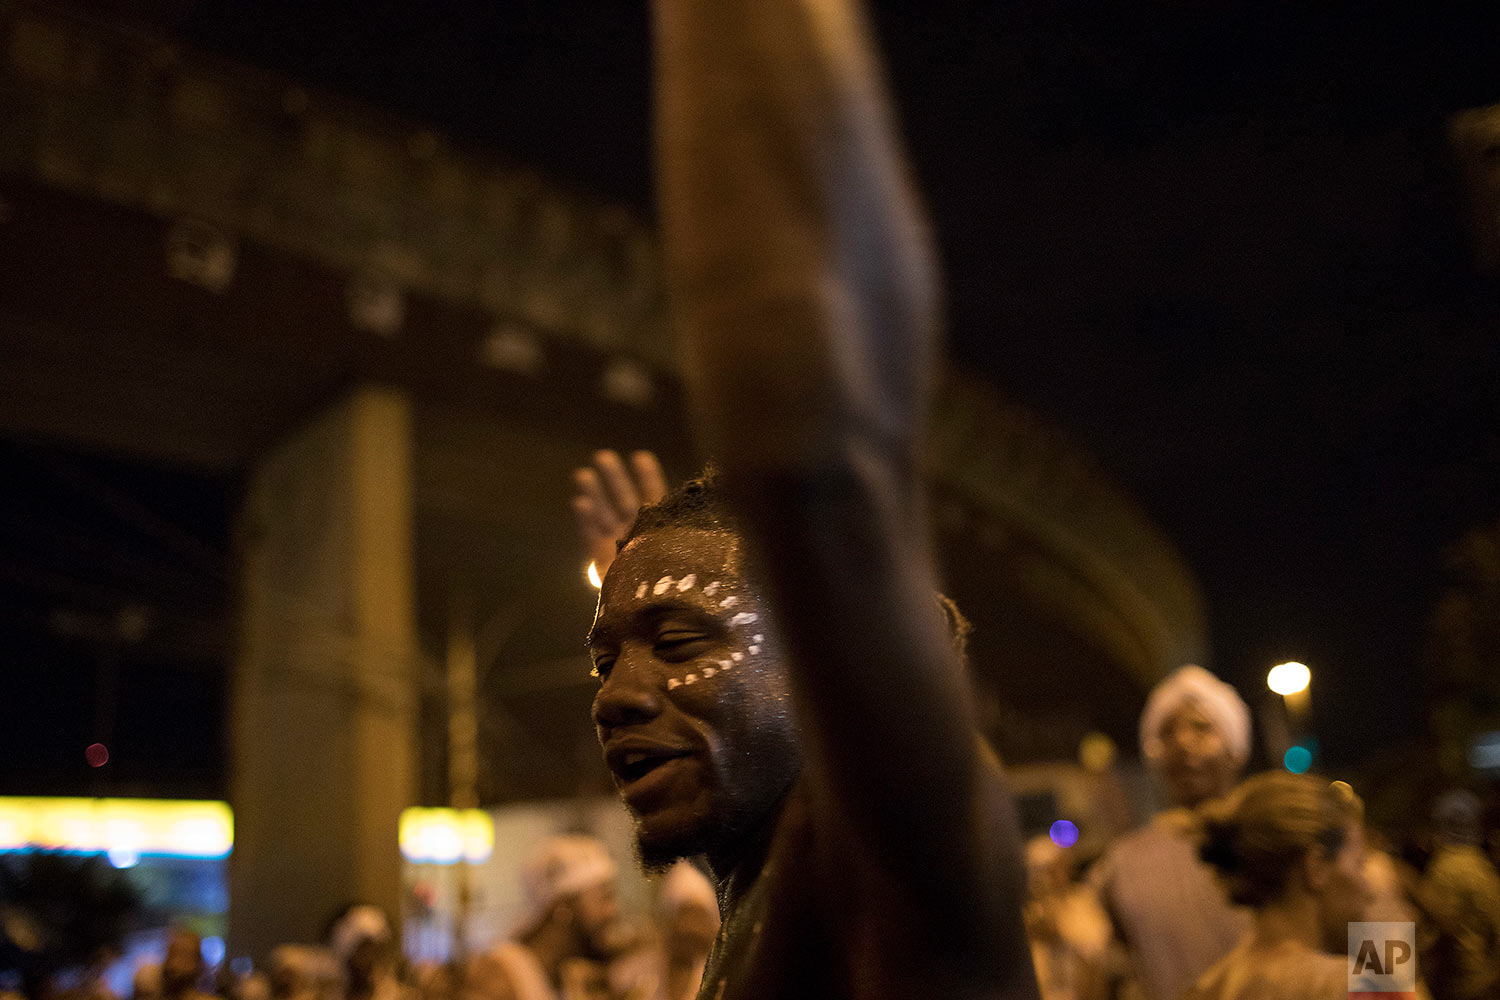 """In this Jan. 22, 2018 photo, a member of the Paraiso do Tuiuti samba school rehearses their dances and songs that make reference to Brazil's history with slavery, in the streets of Rio de Janeiro, Brazil. Leaders of the samba group see many instances of what they consider """"modern-day slavery"""" in Latin America's largest nation. (AP Photo/Leo Correa)"""